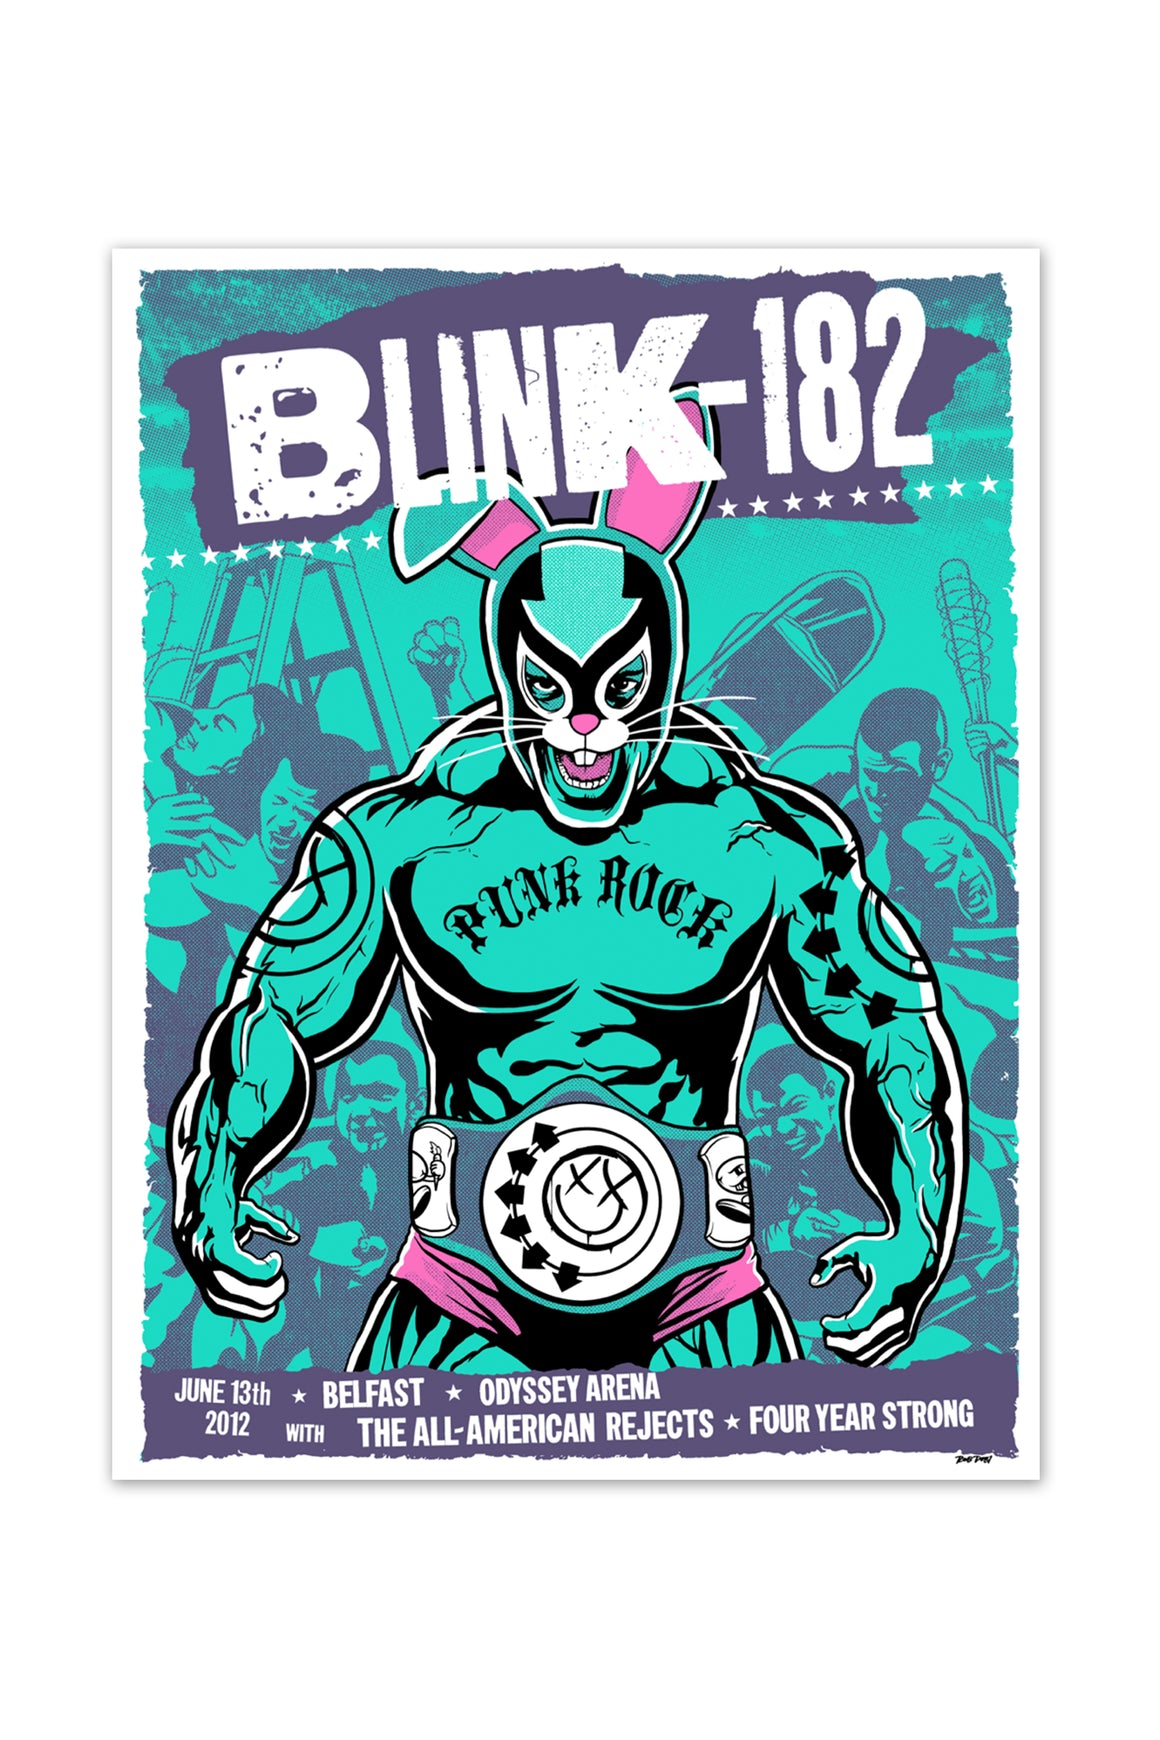 blink-182 6/13/2012 Belfast, Ireland UK Event Poster